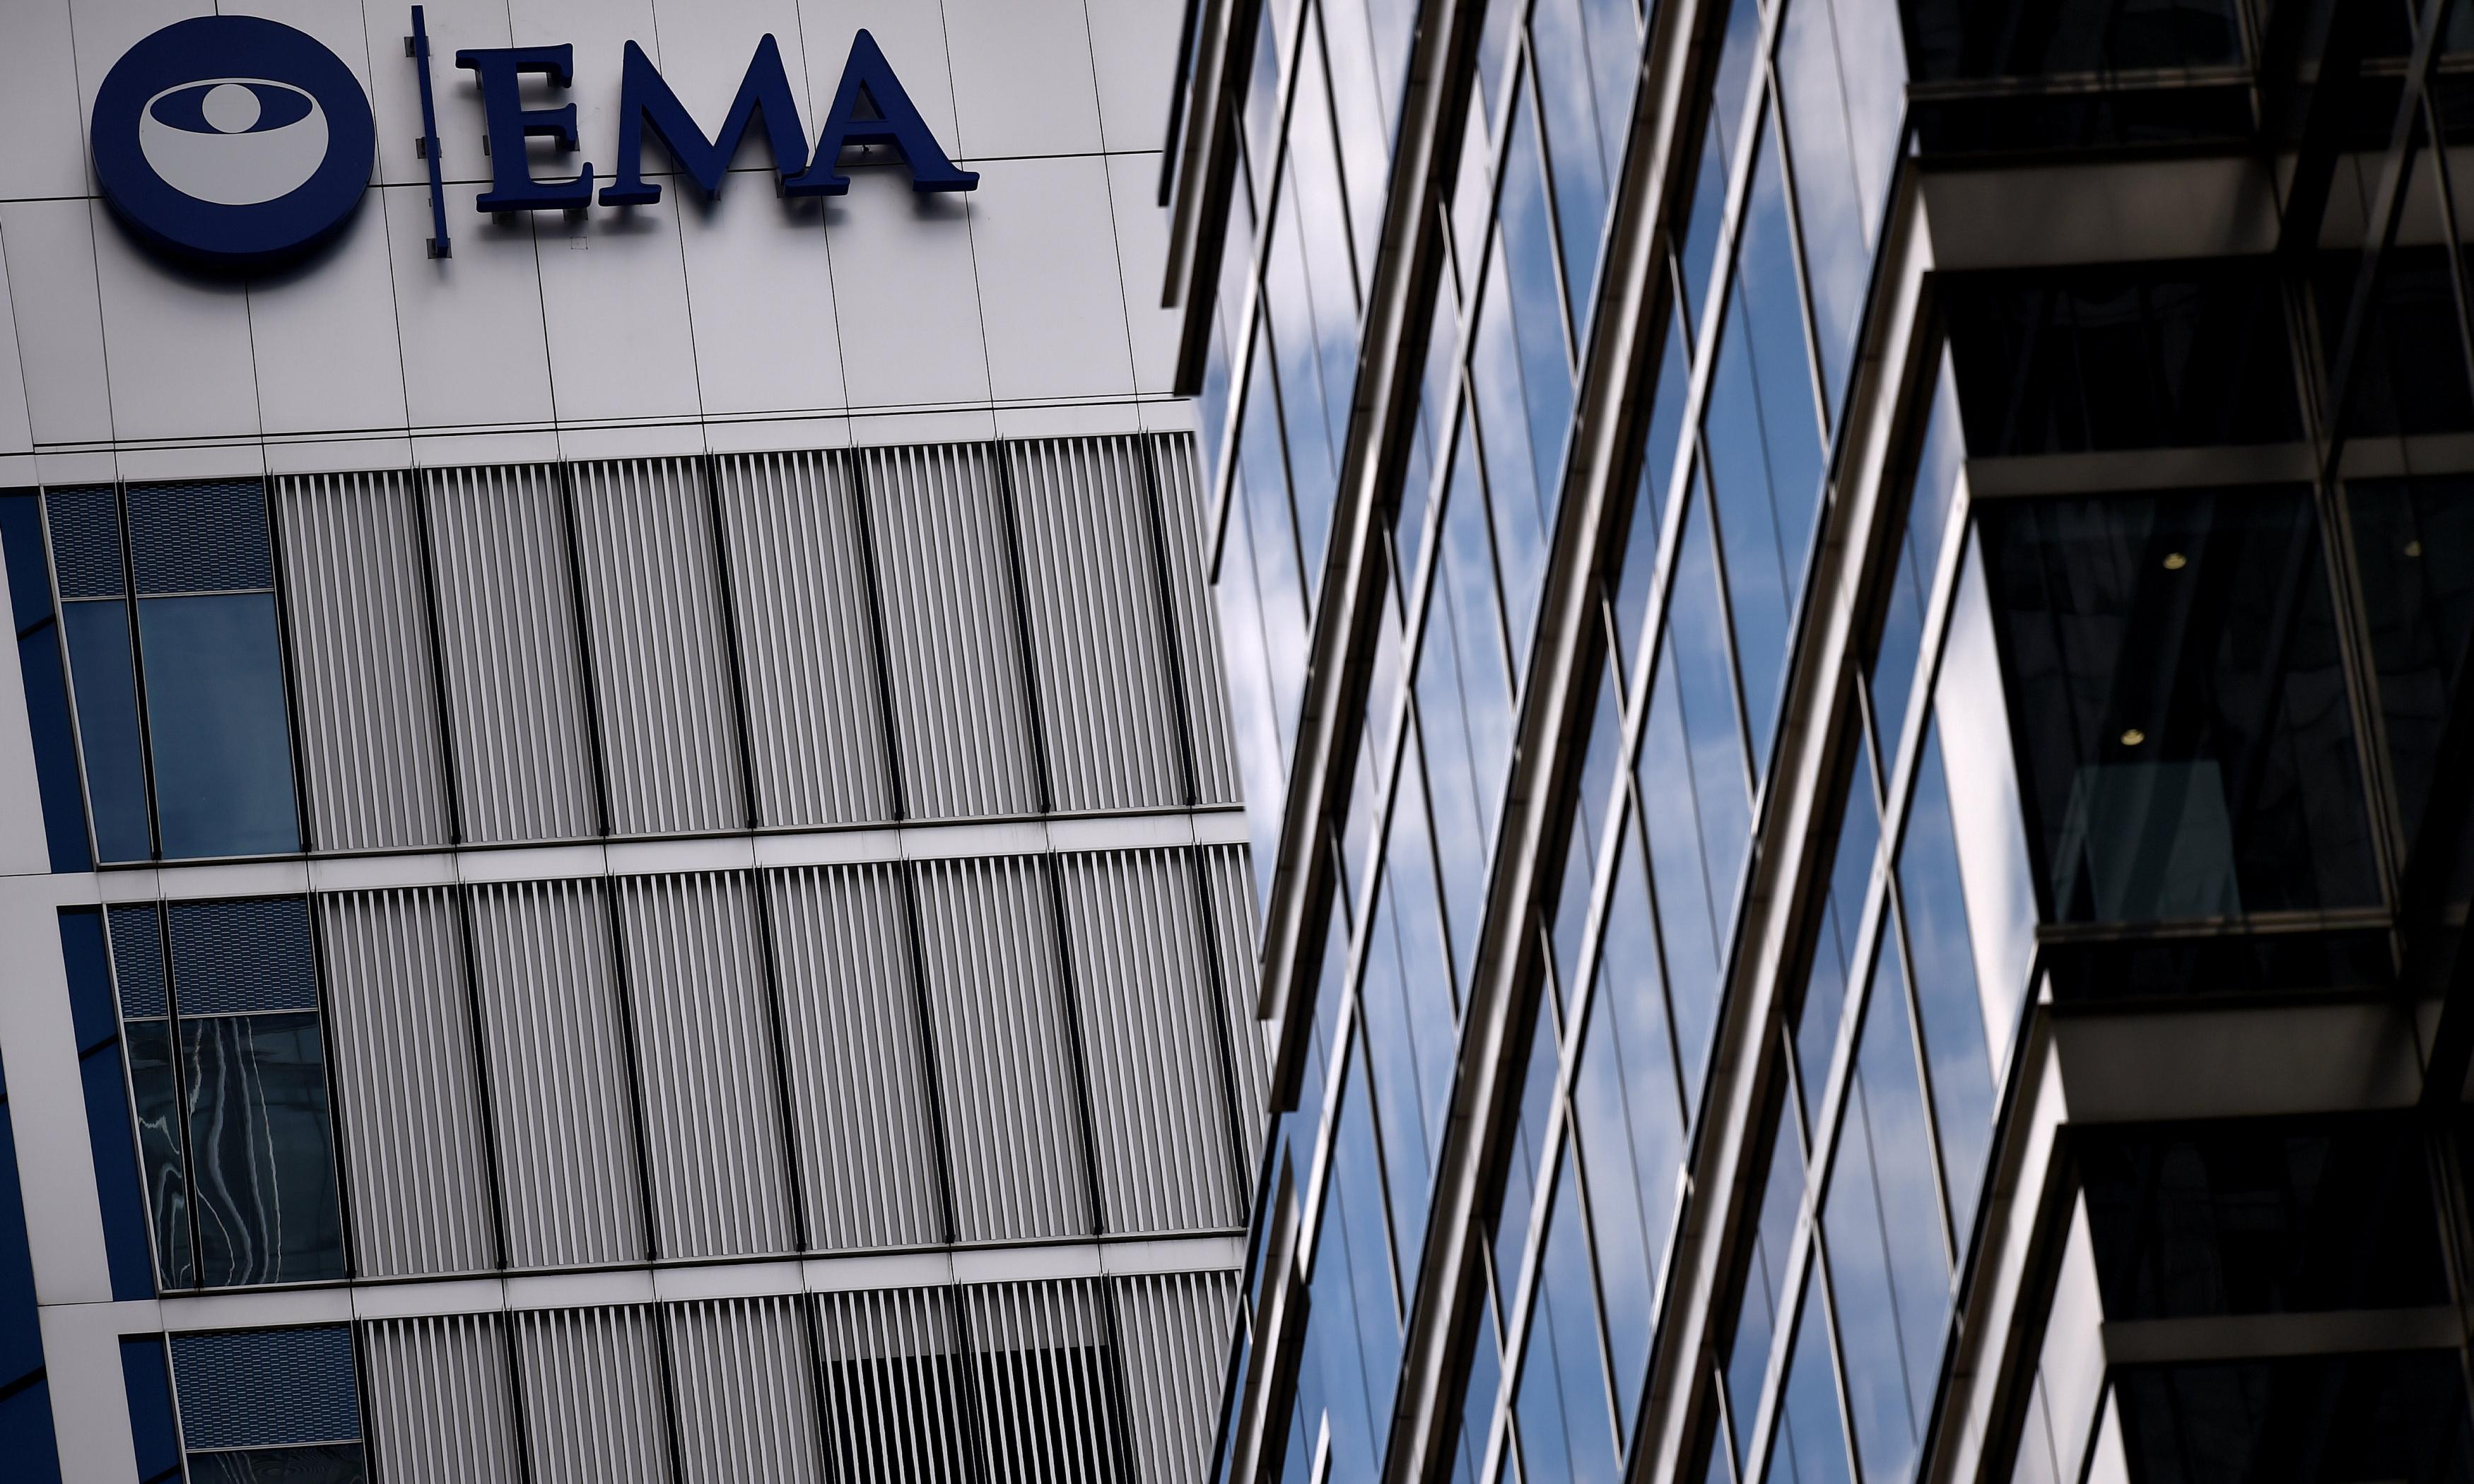 European Medicines Agency loses battle to end UK lease over Brexit